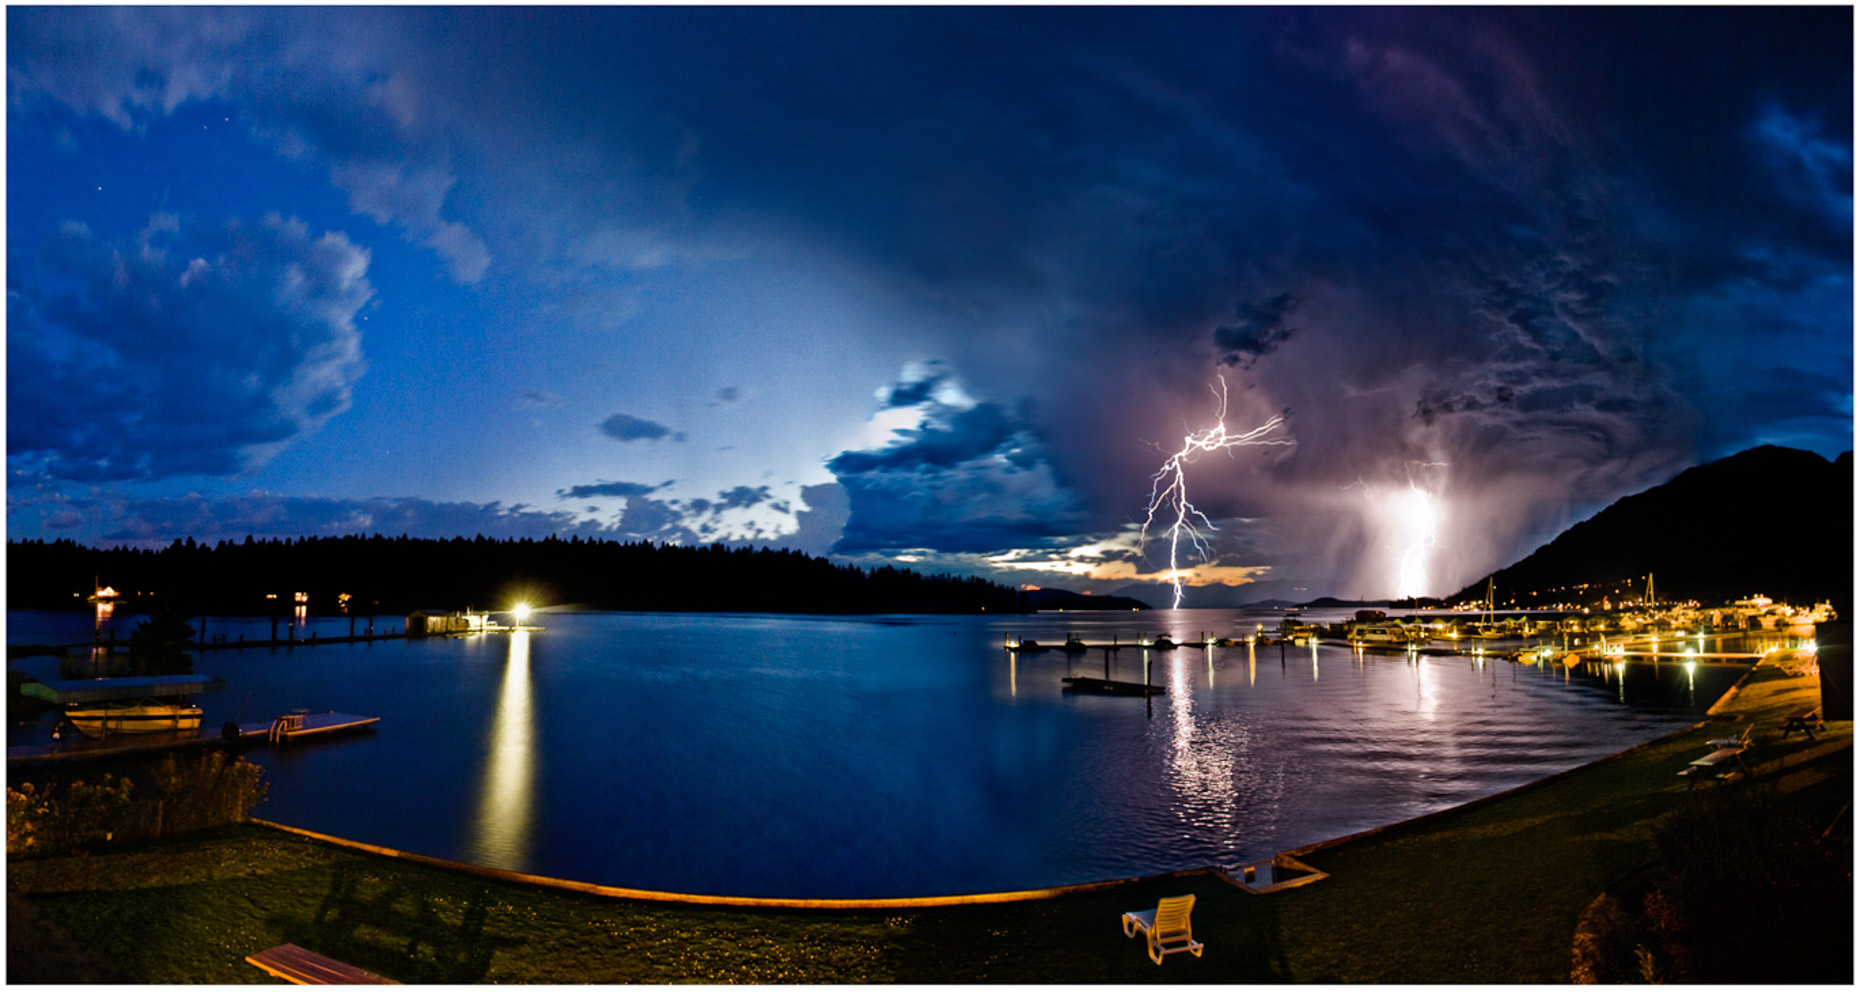 001-FLAT_LakePendOreilleLightingStormPerefect_Pano68_MG_6319